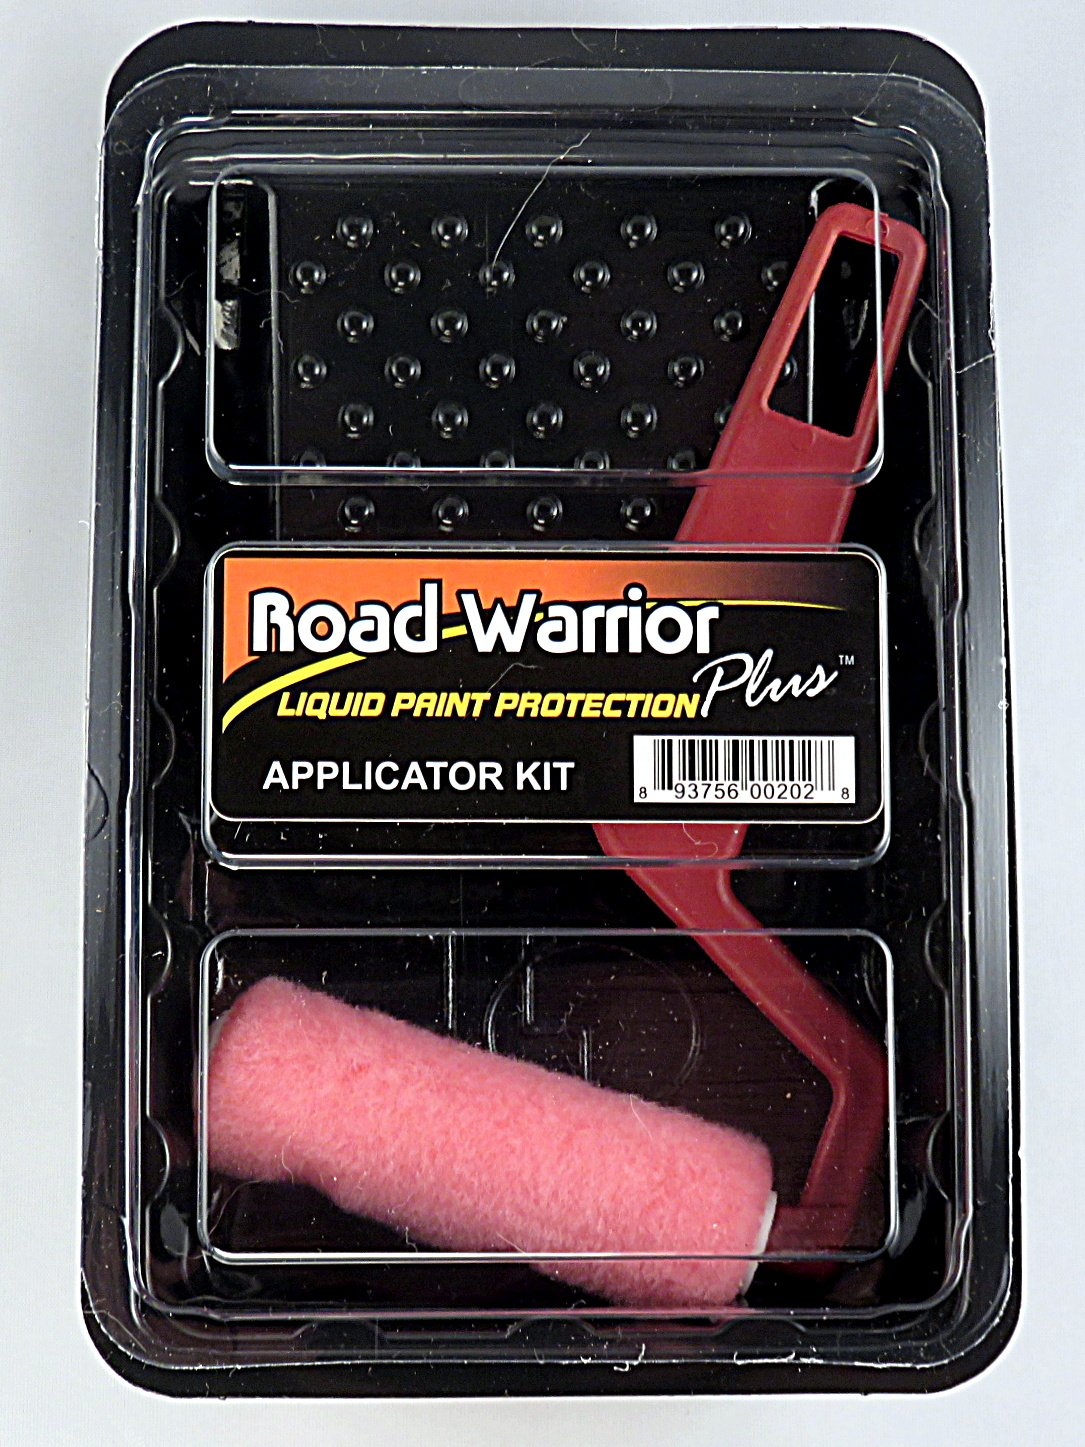 Road Warrior Plus Paint Protection -Applicator Kit 4332946577